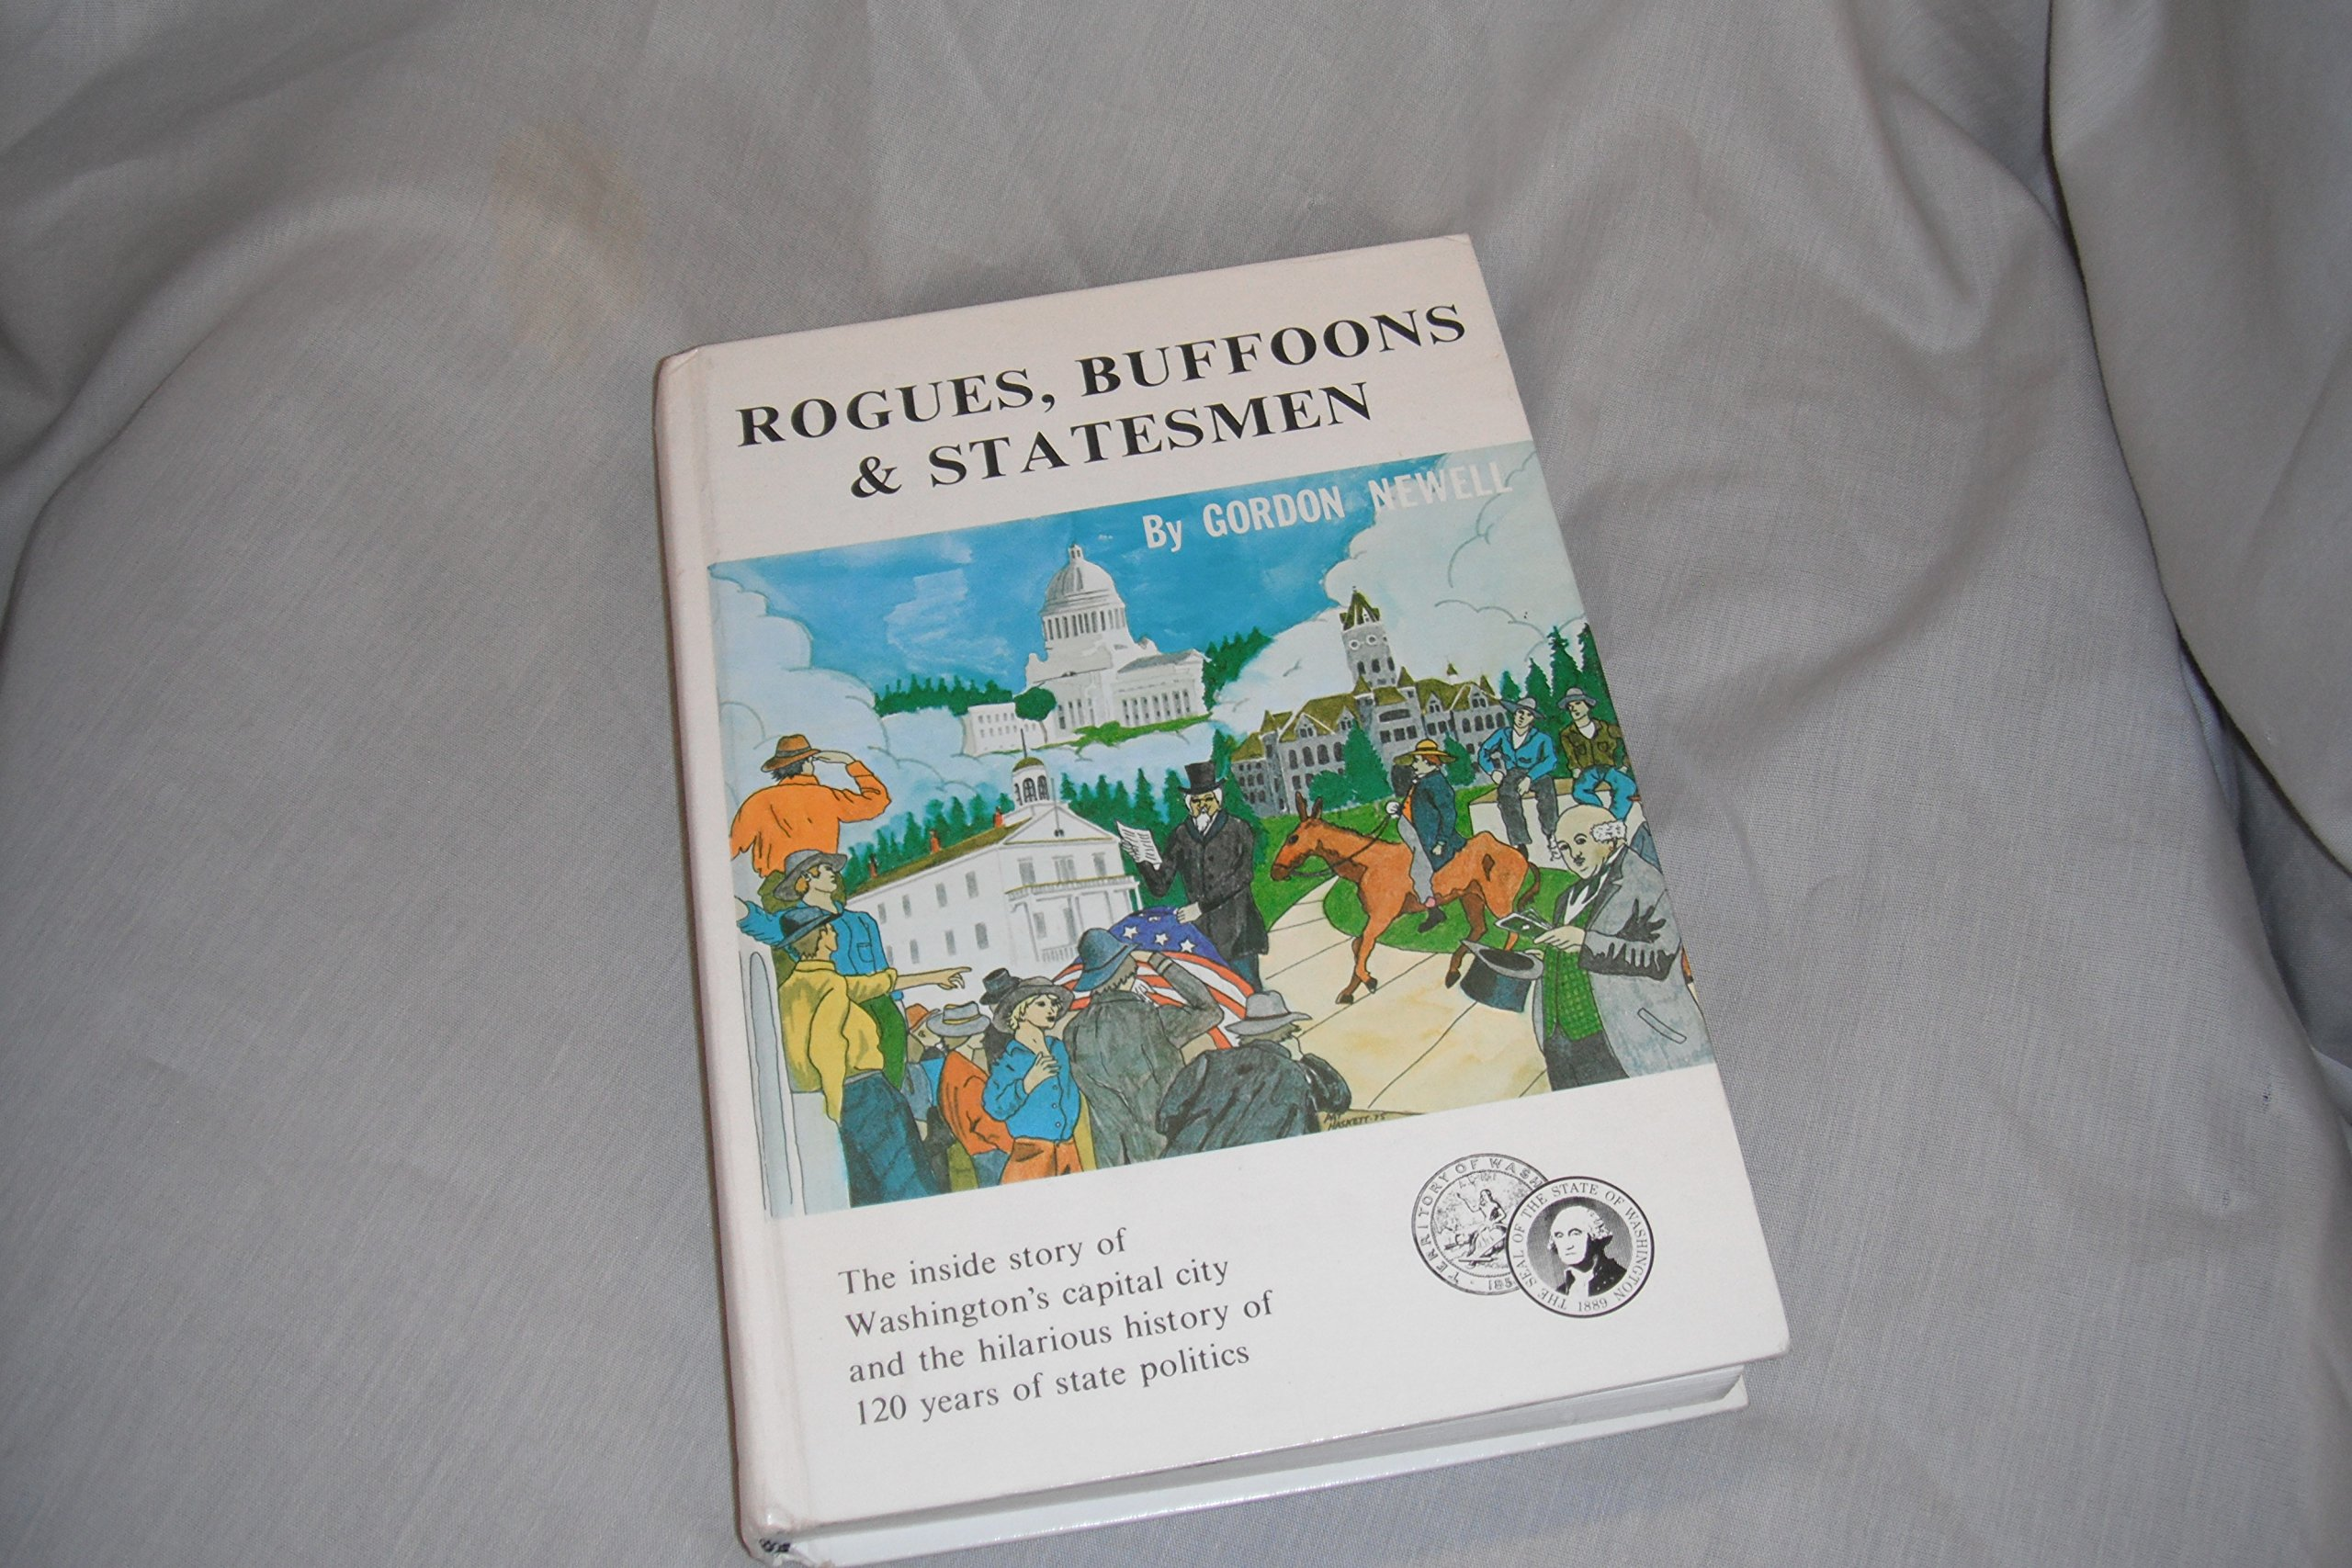 Rogues, Buffoons & Statesmen: the inside story of Washington's capital city and the hilarious history of 120 years of state politics, Newell, Gordon R